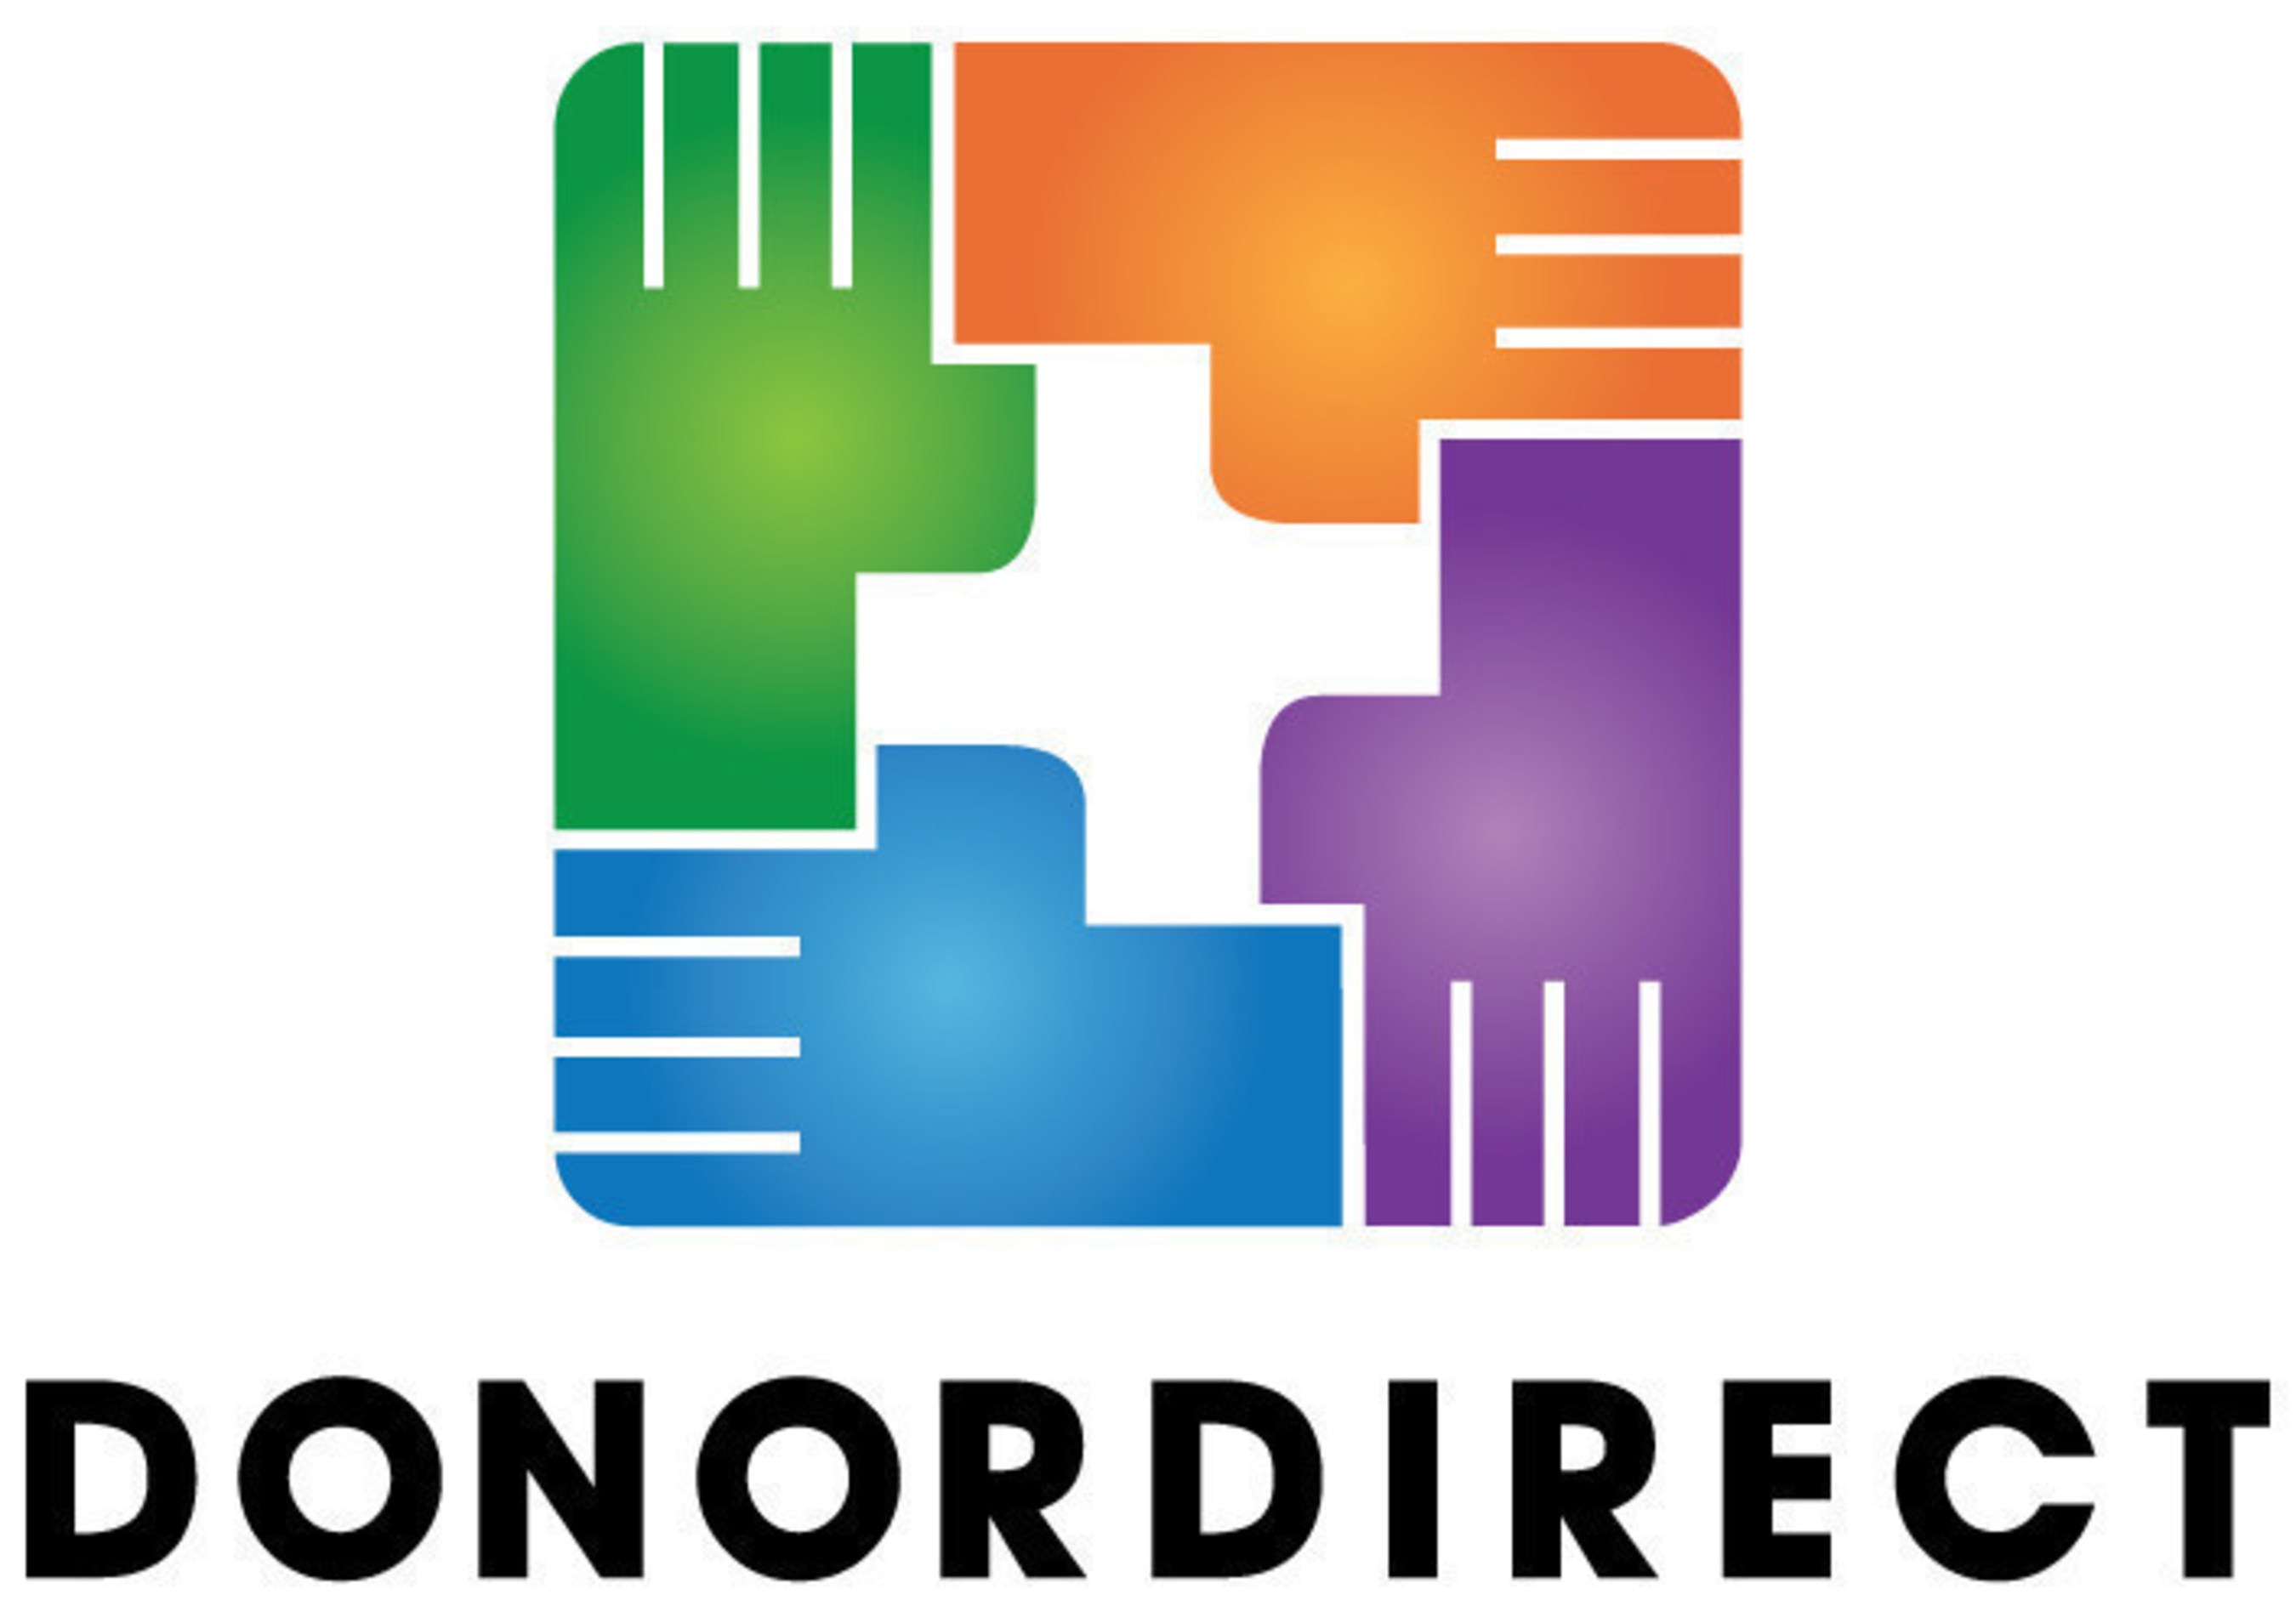 DonorDirect announces partnership with Pioneers, Inc.